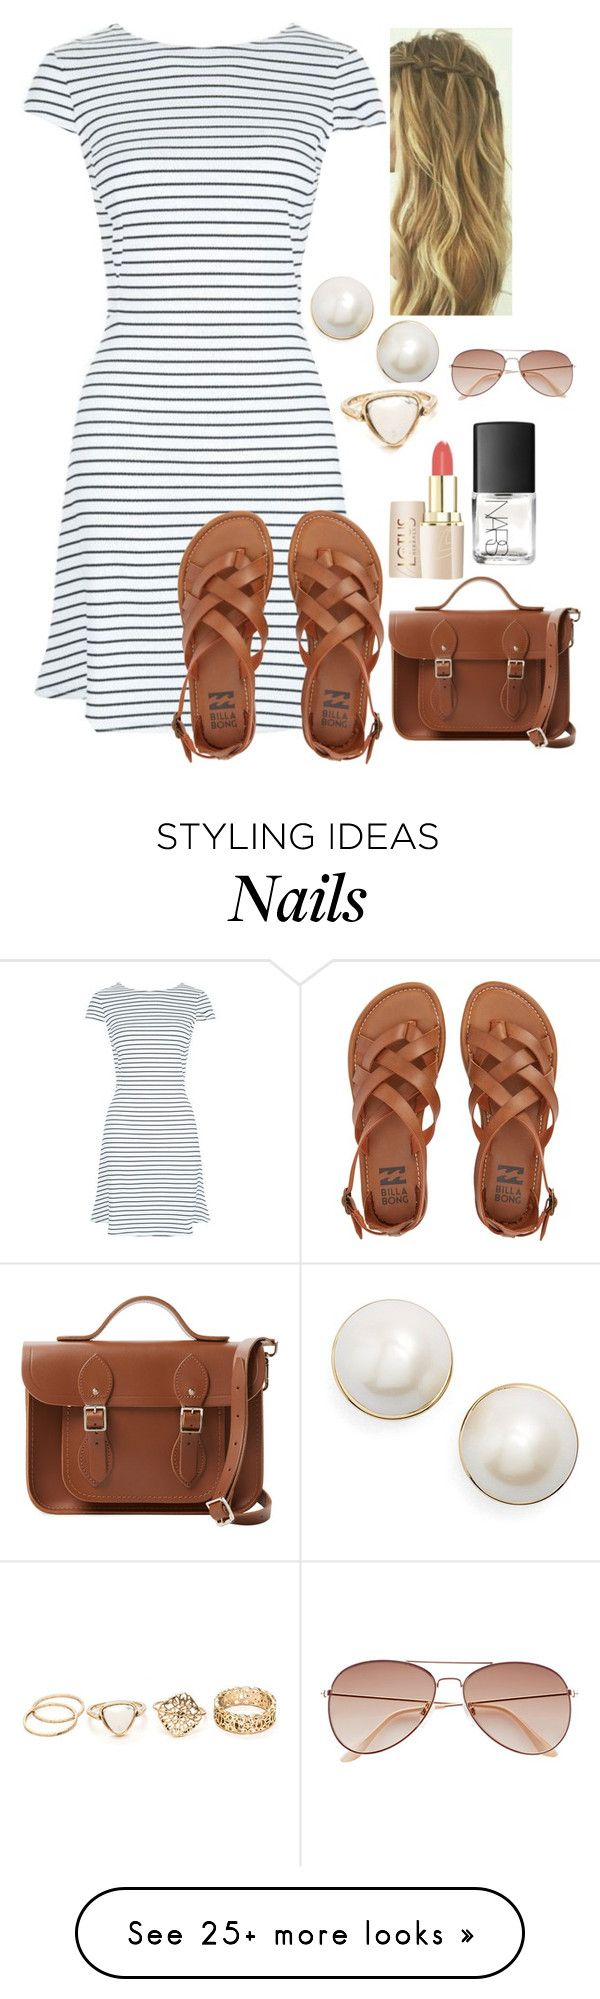 What do you love to do? by jasietote on Polyvore featuring Billabong, Kate Spade, The Cambridge Satchel Company, NARS Cosmetics and HM